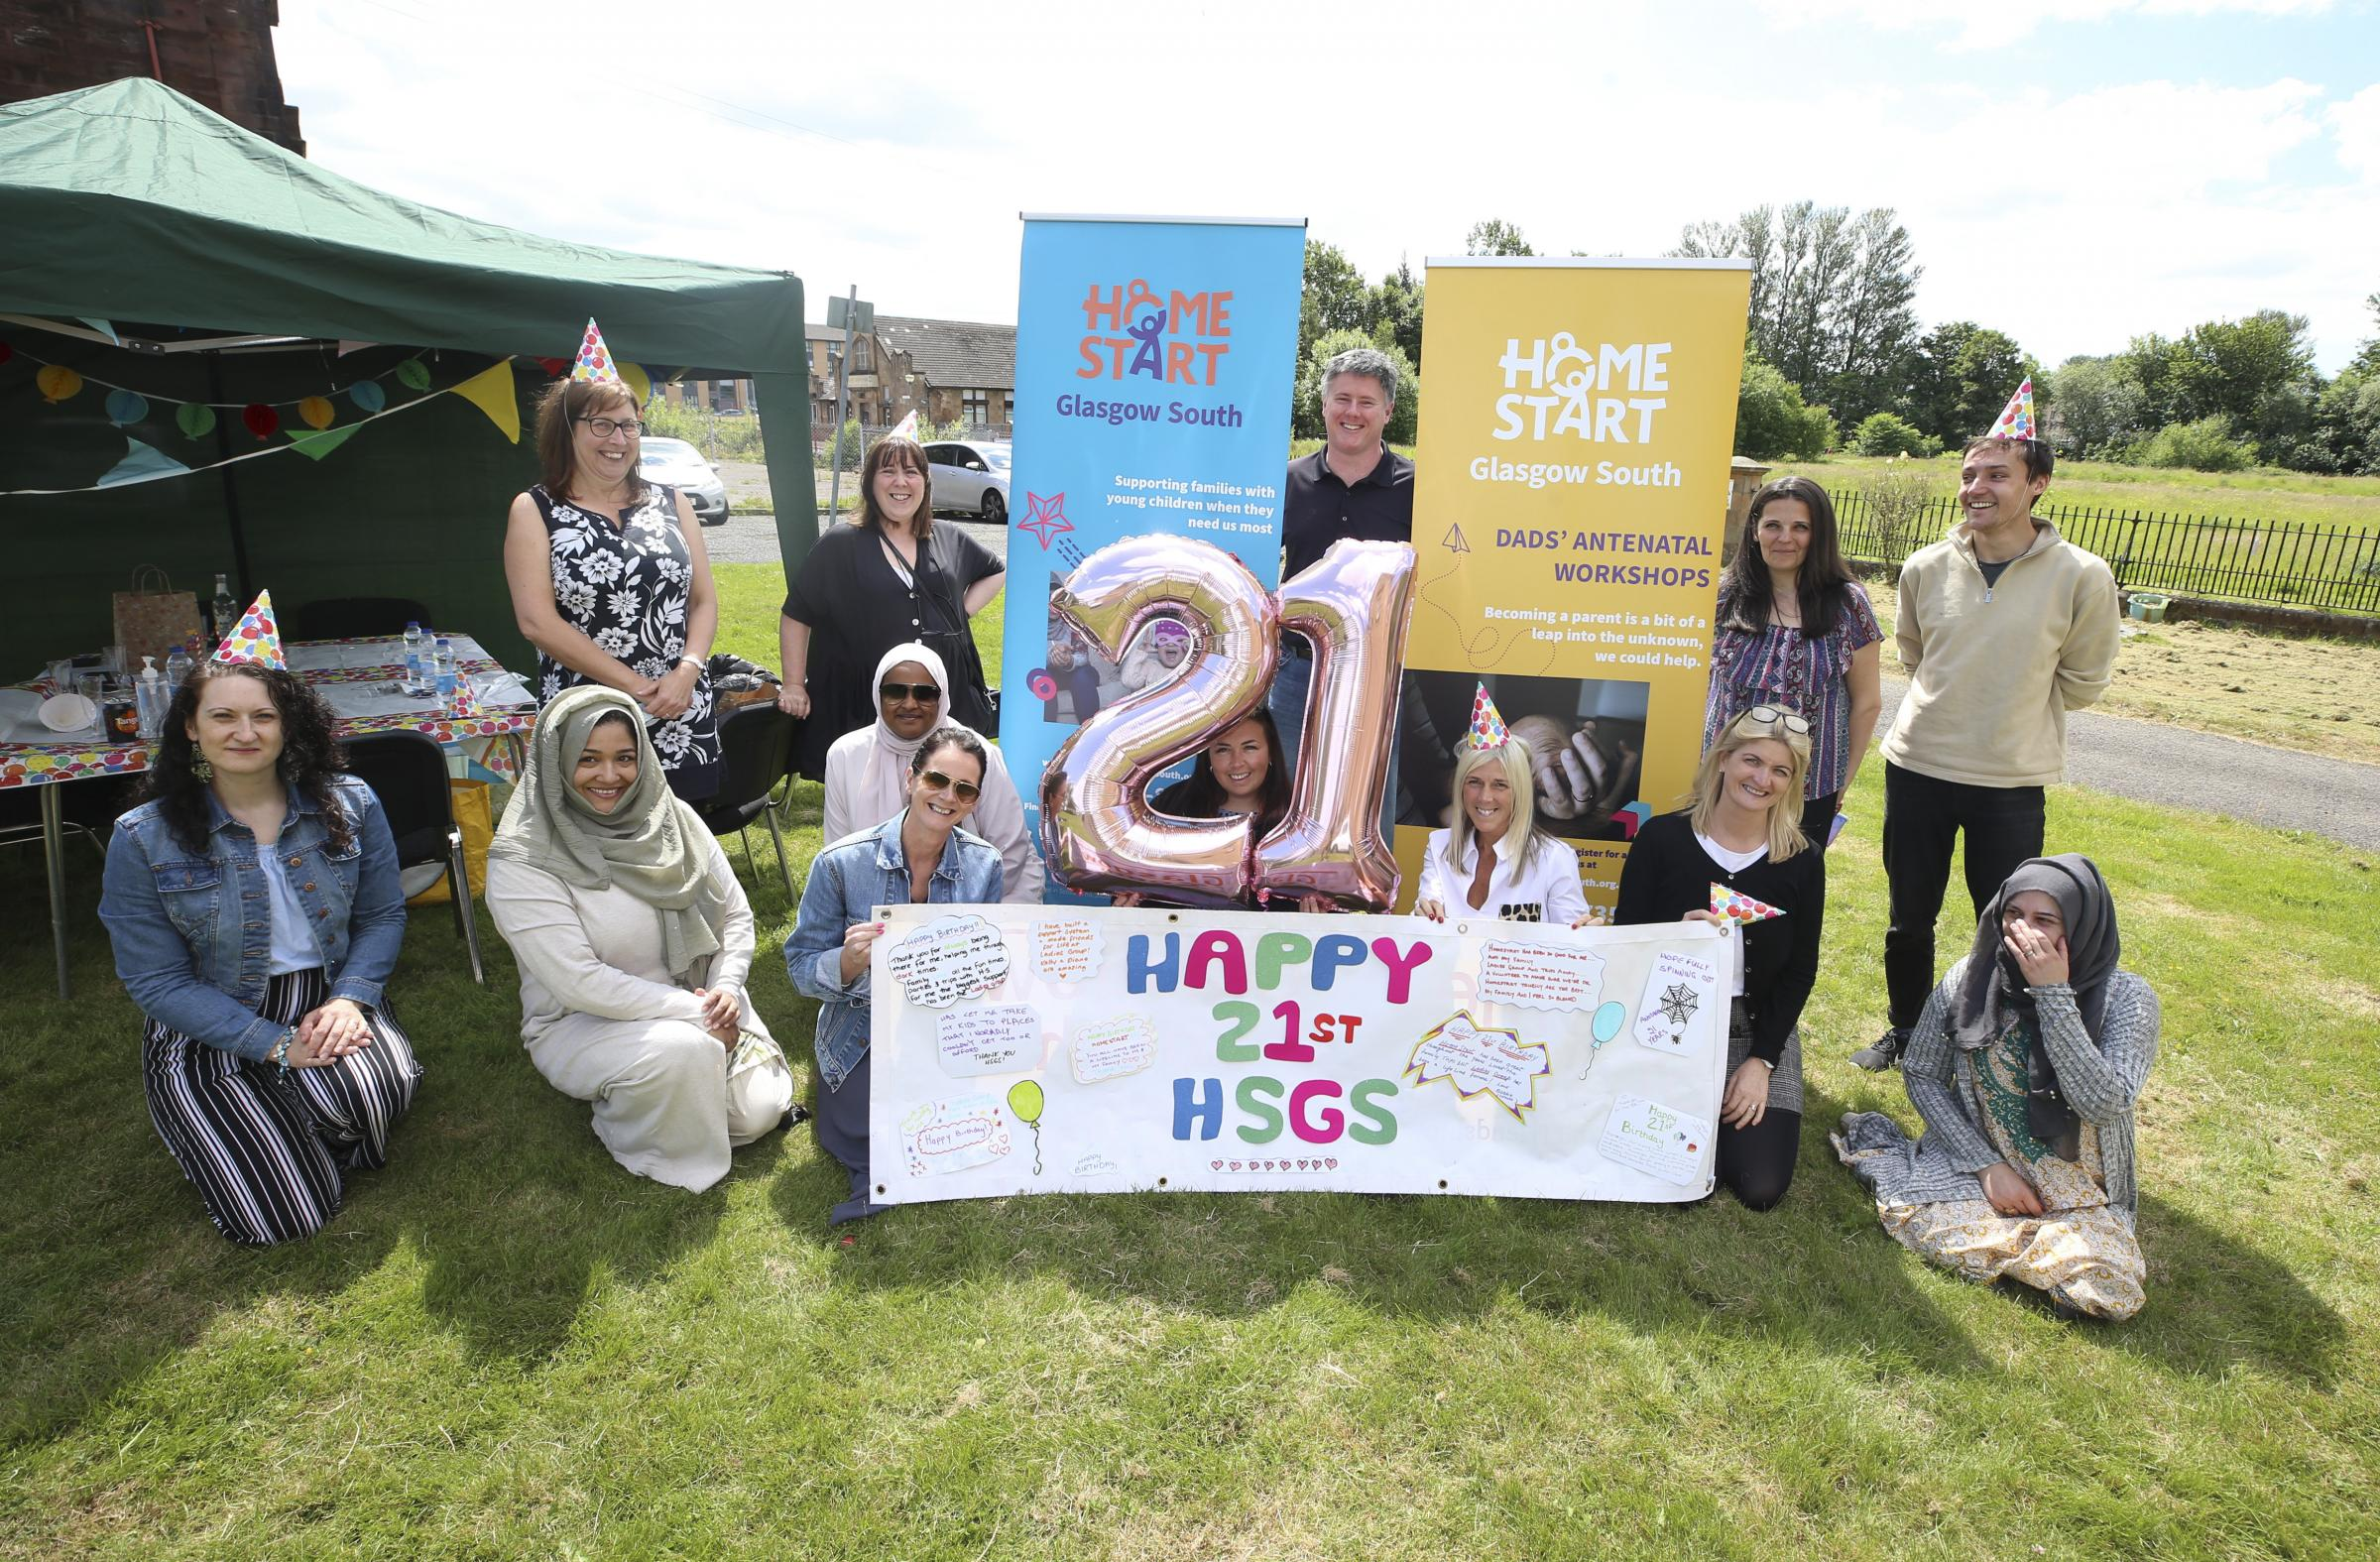 Home Start Glasgow South celebrate 21 years in the community